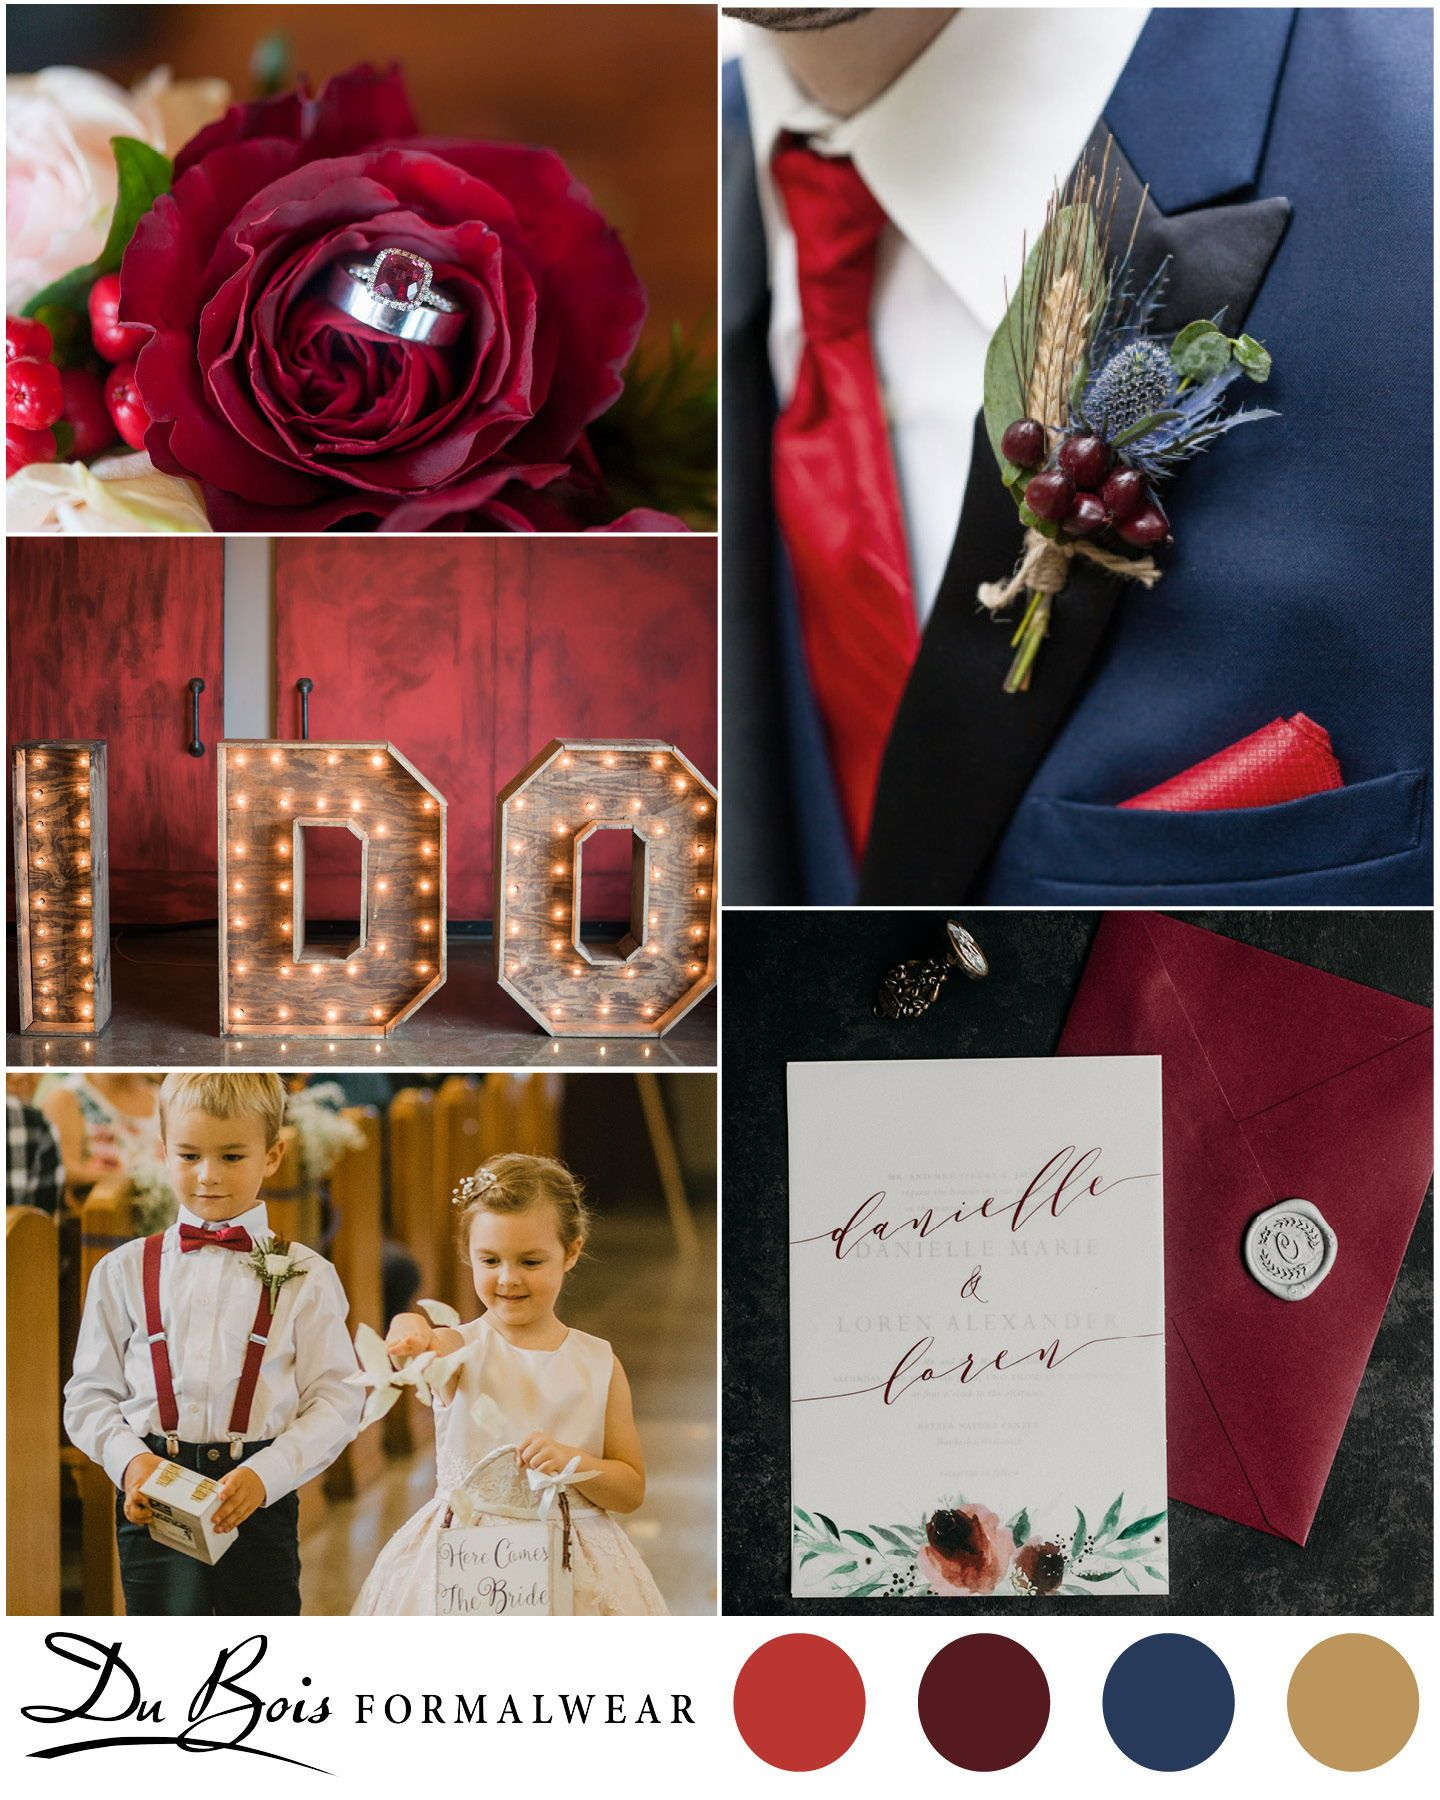 Red Burgundy And Wine Accessories Look Great With A Navy Suit Or Tuxedo For The Groomsmen In Your Wedding Burgundy Burgundy Floral Wedding